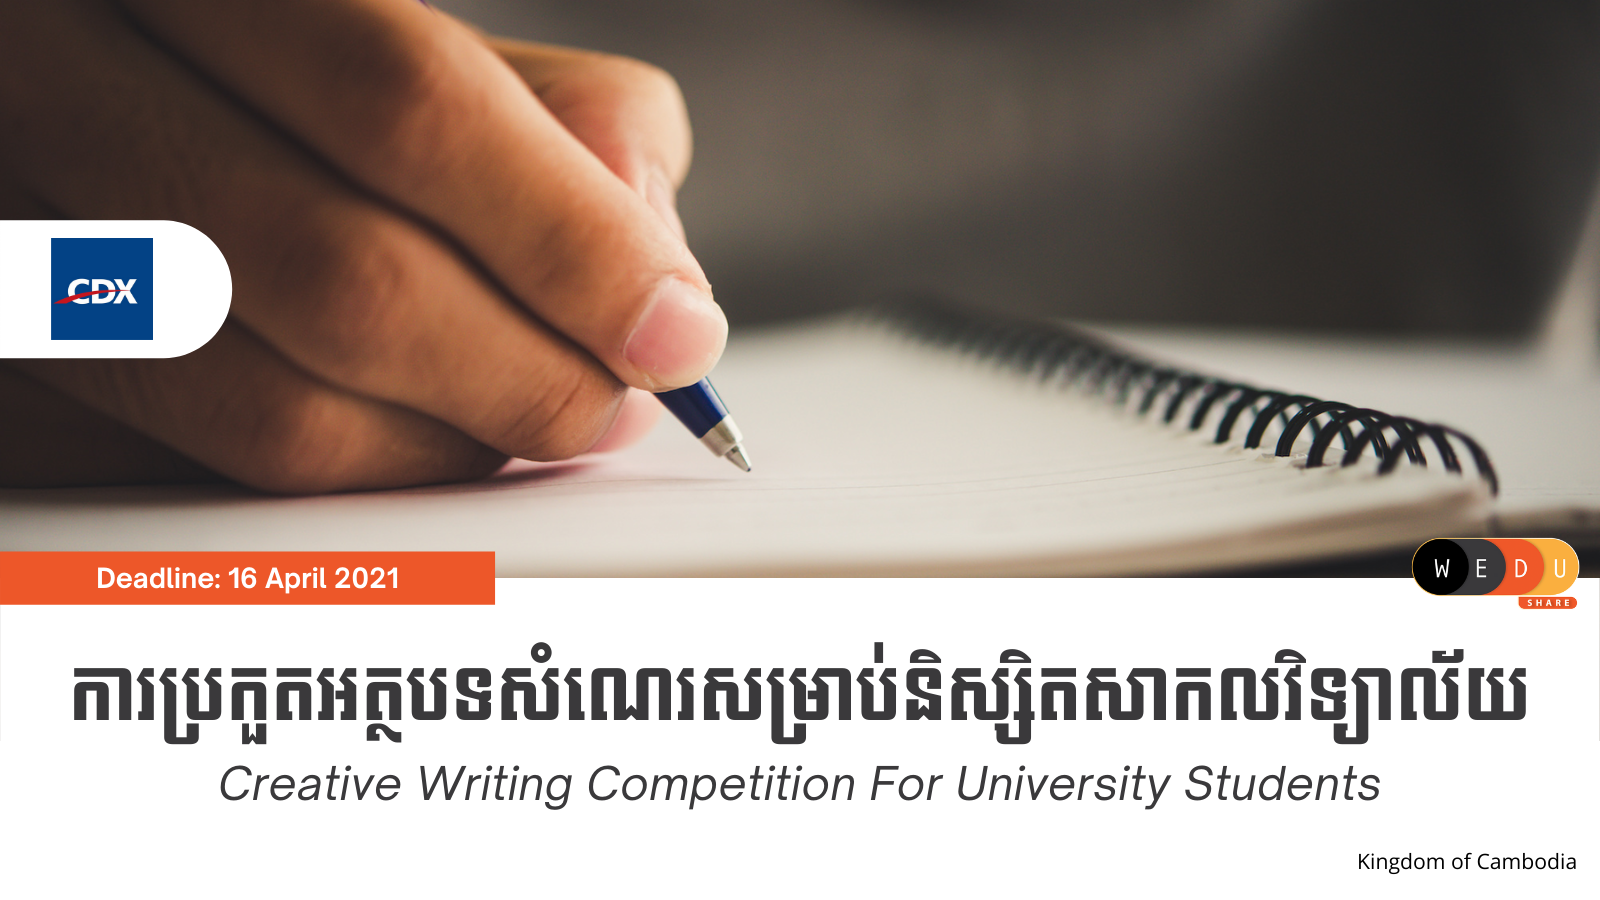 Creative Writing Competition for University Students